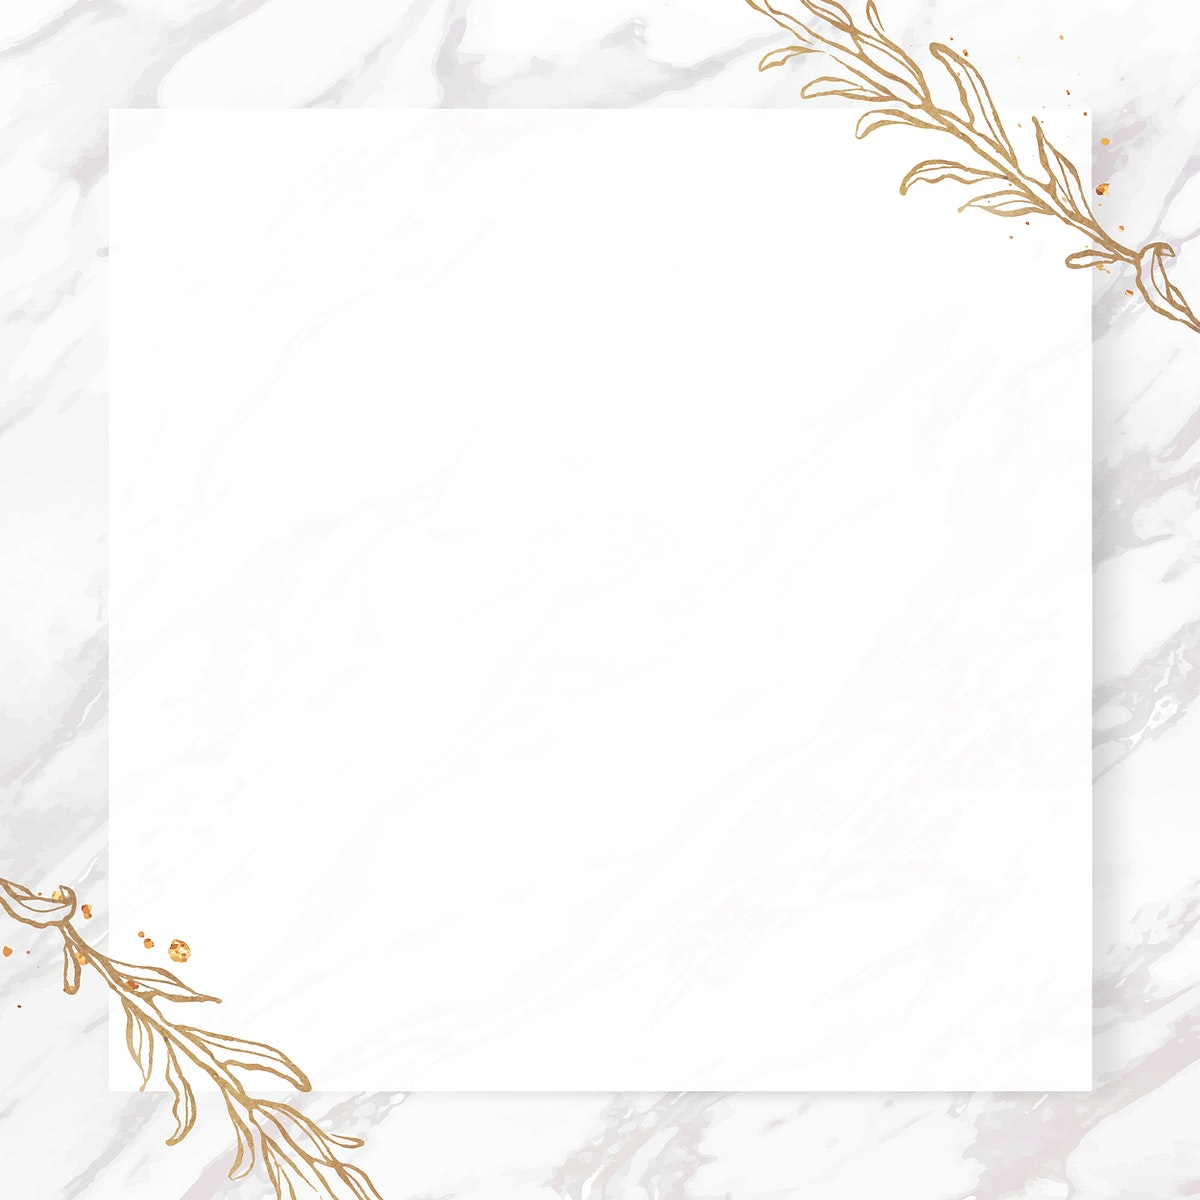 Gold leaves frame on marble background